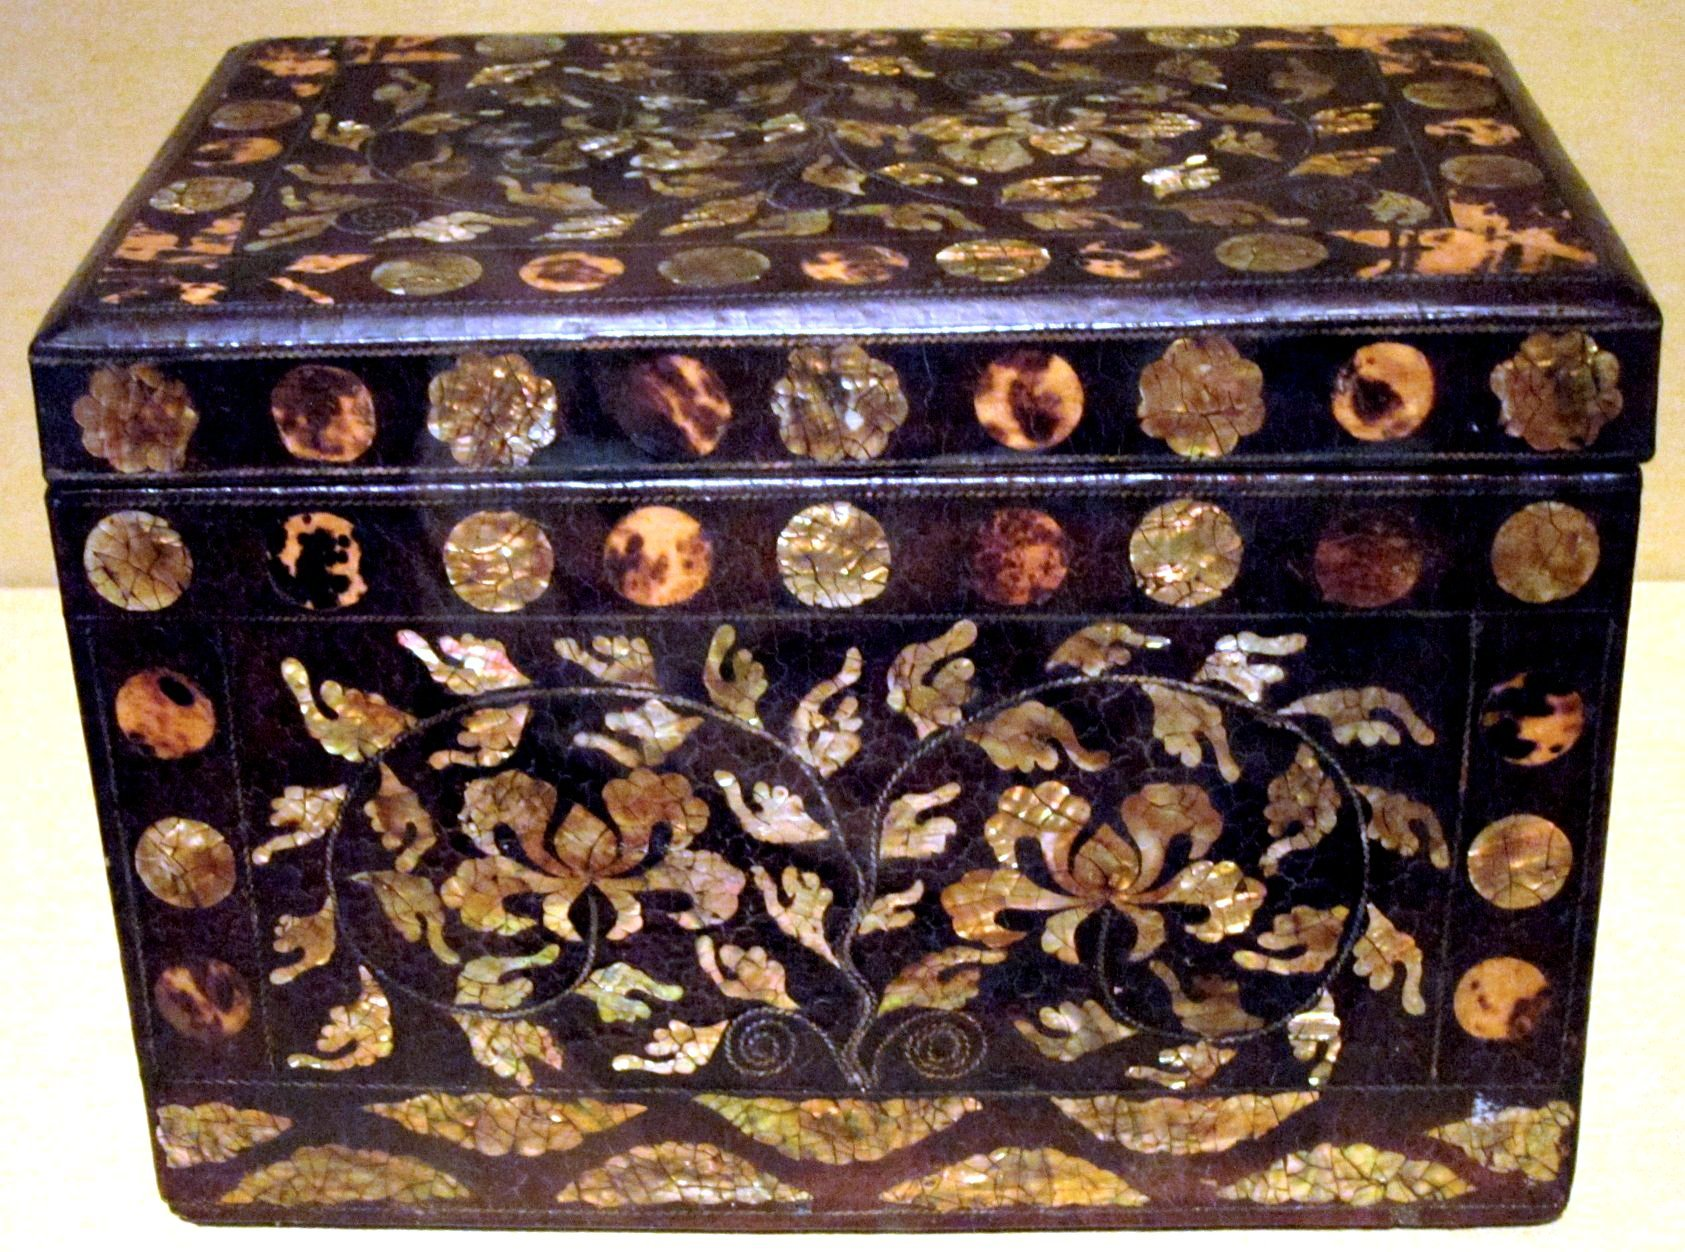 File:Korean covered lacquer box, mid to late 18th century